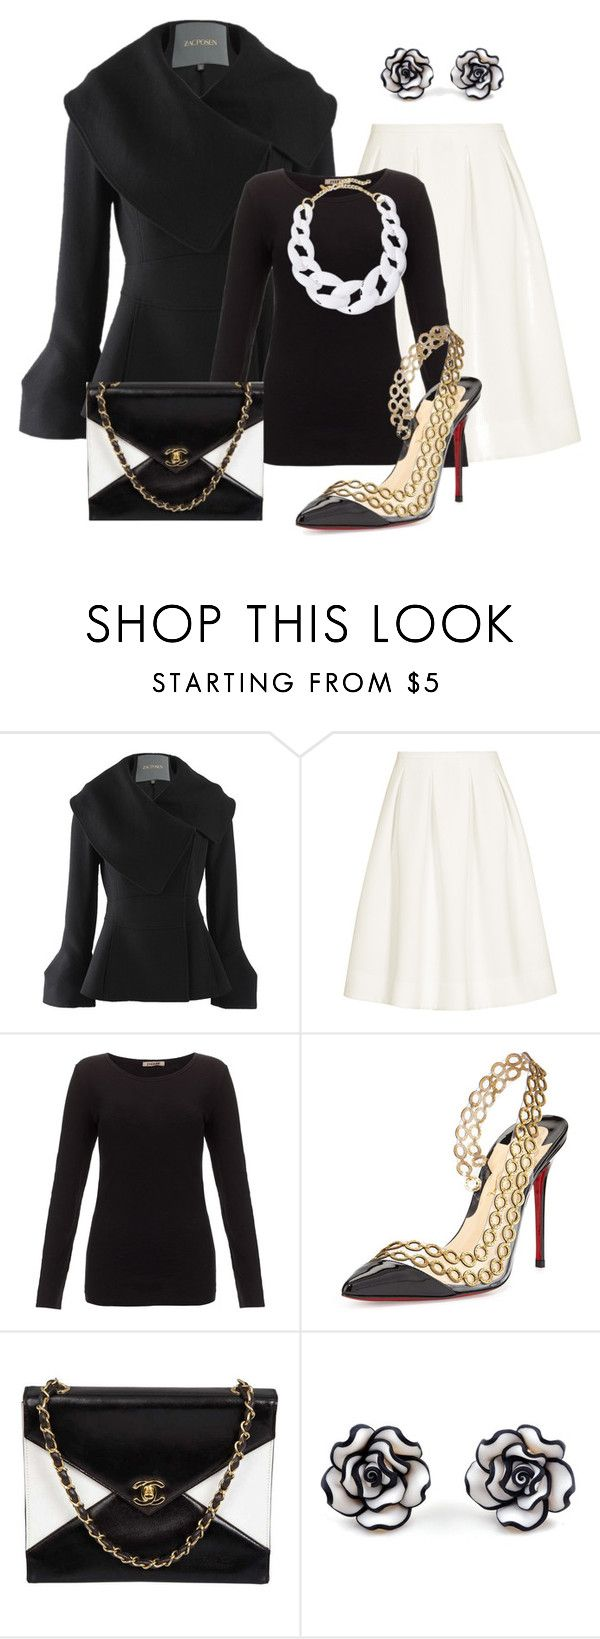 """Black and white"" by tatajrj ❤ liked on Polyvore featuring Zac Posen, Reiss, Jigsaw, Christian Louboutin, Chanel and Kenneth Jay Lane"